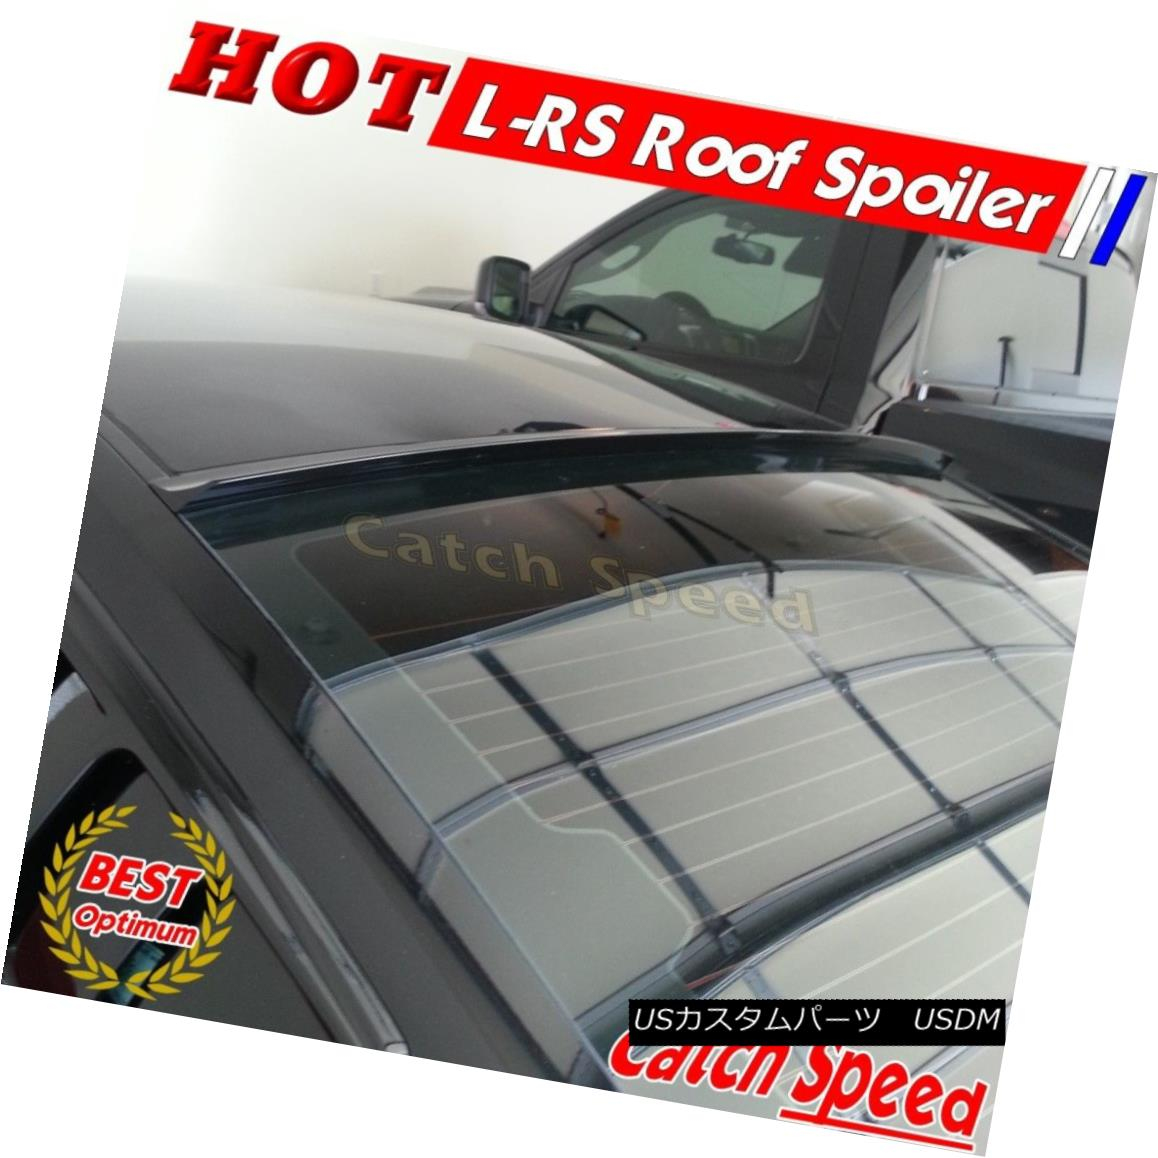 エアロパーツ Painted LRS Rear Roof Spoiler Wing For Hyundai Sonata Hybrid 2010-2014 Sedan US? Hyundai Sonata Hybrid 2010-2014 Sedan USのための塗装済みLRSリアルーフスポイラーウイング?